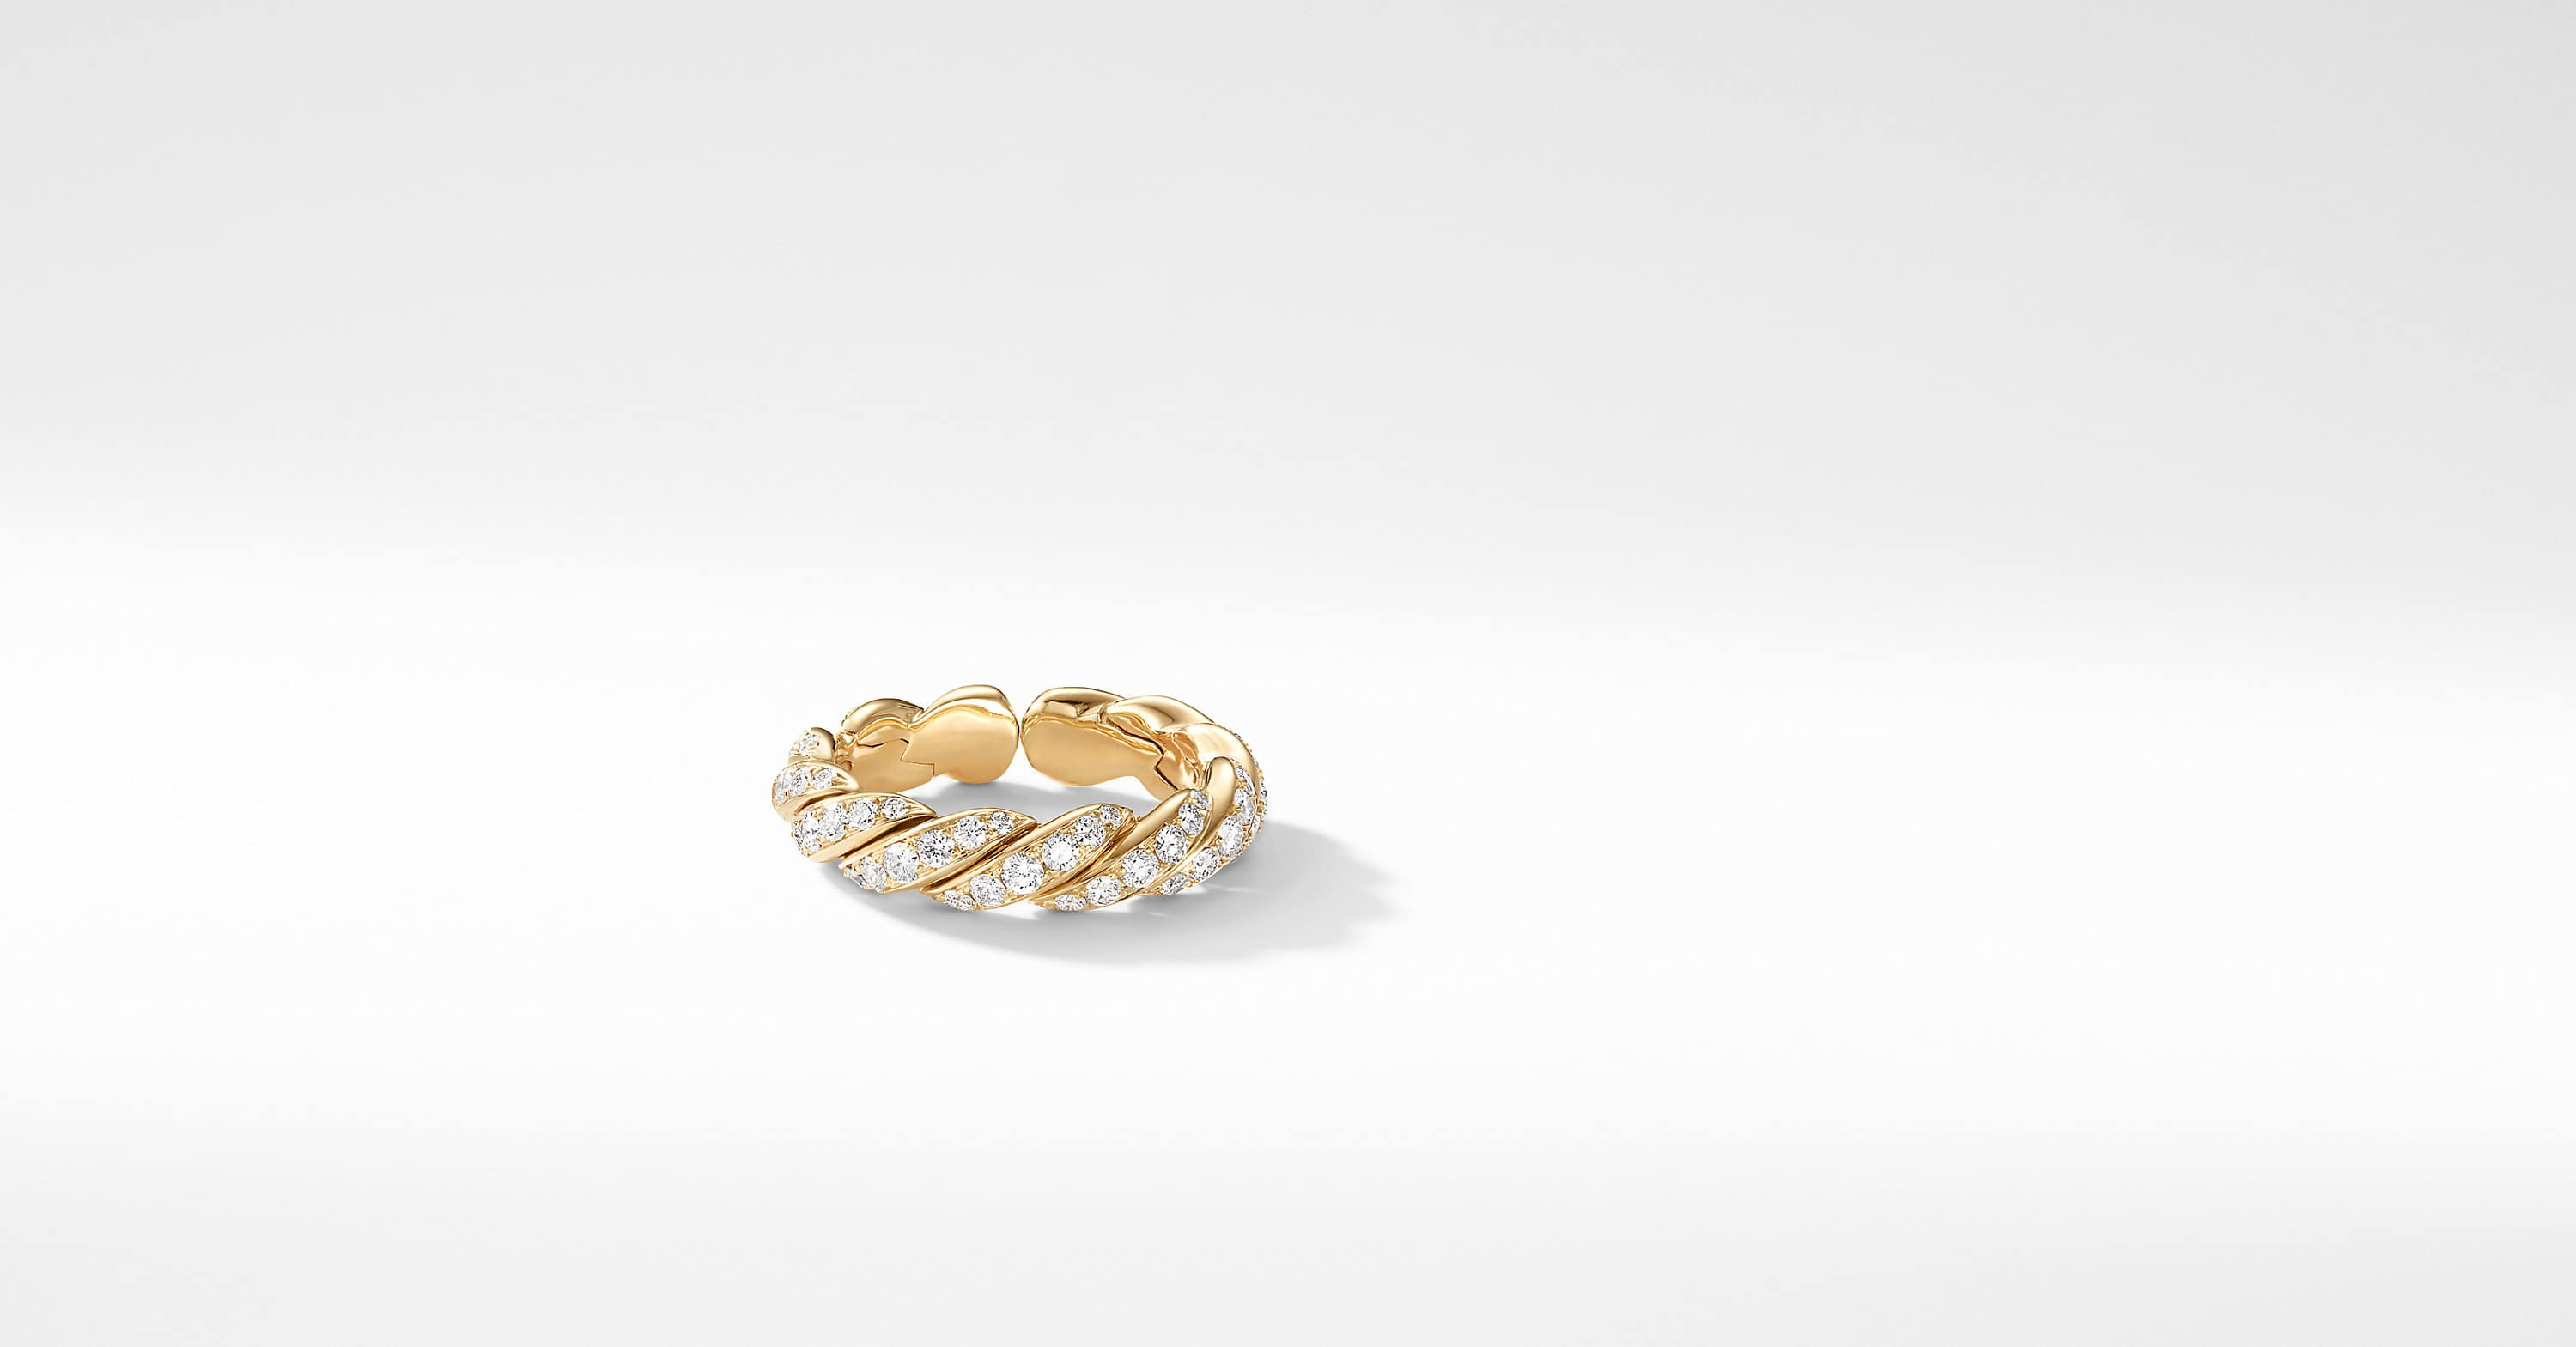 Pavéflex Band Ring in 18K Gold with Diamonds